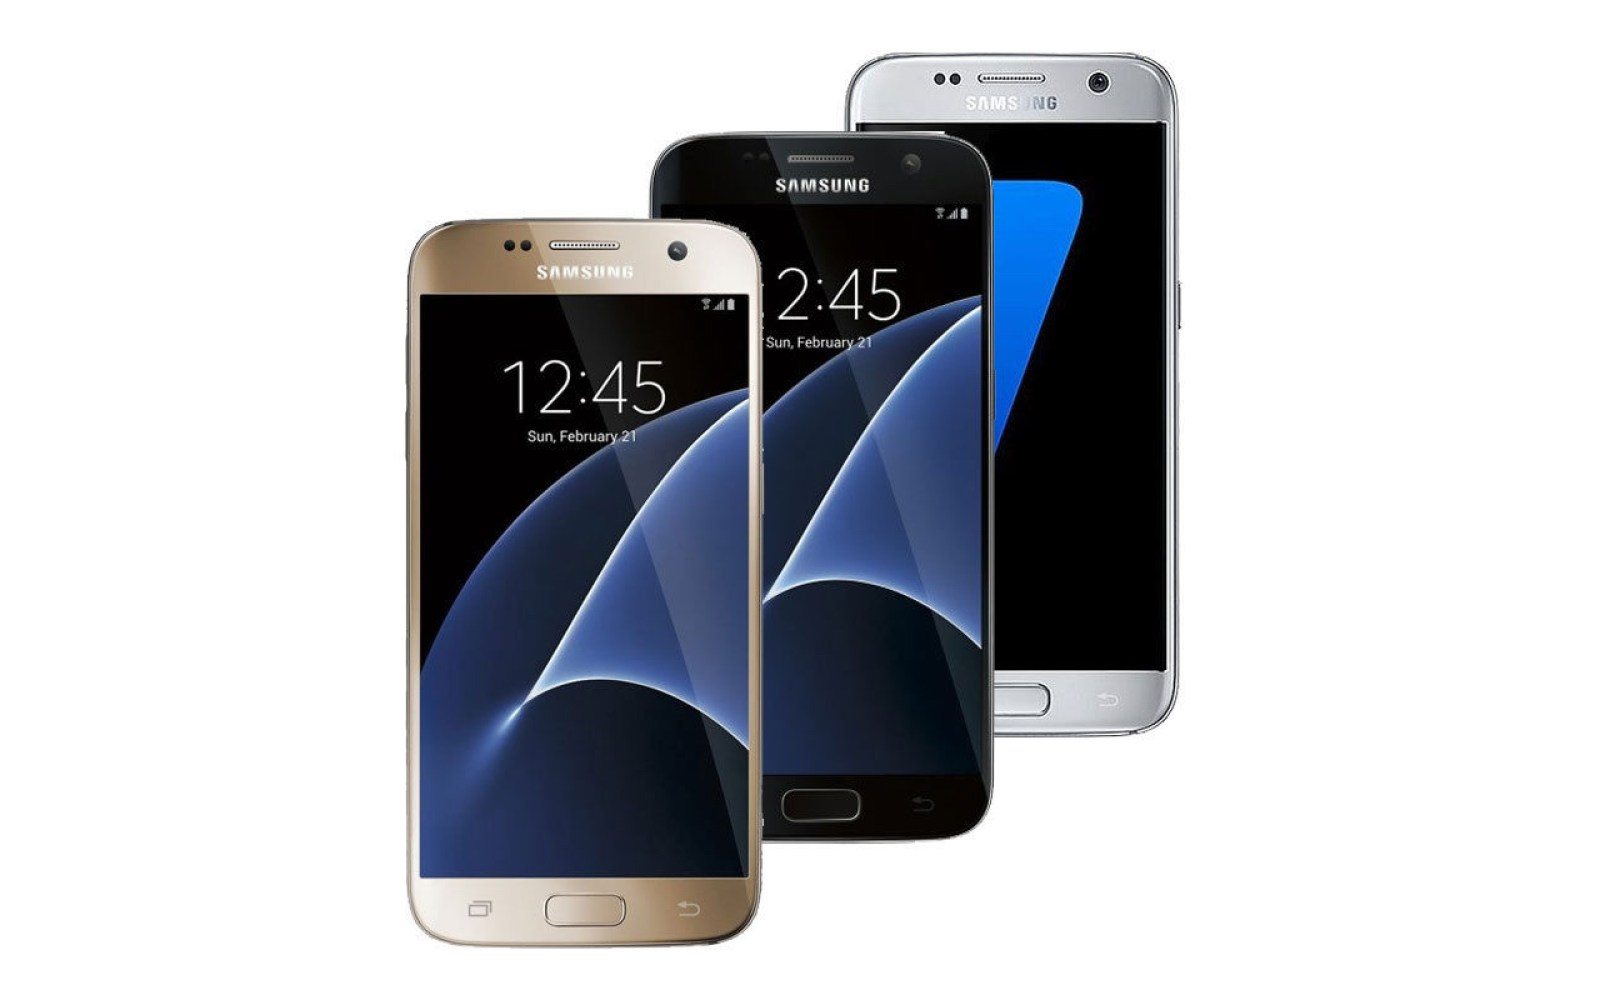 Samsung appears to be preparing an Android Nougat beta program for the Galaxy S7 Edge